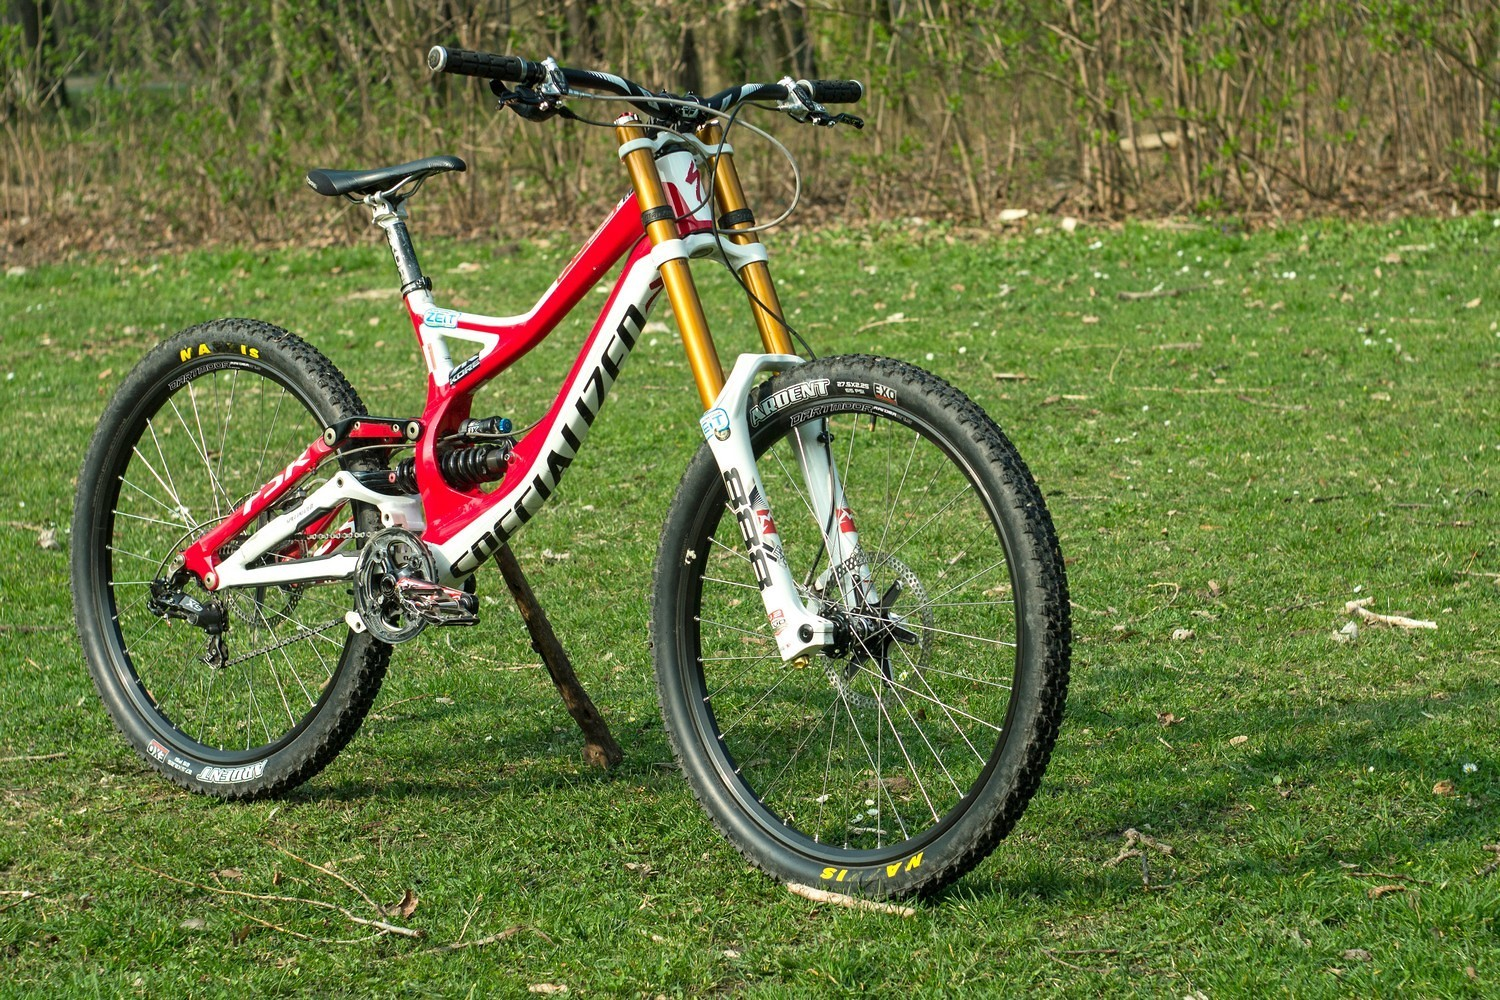 Brand new Dartmoor 27,5 wheels - Dartmoor Bikes - Mountain Biking Pictures - Vital MTB